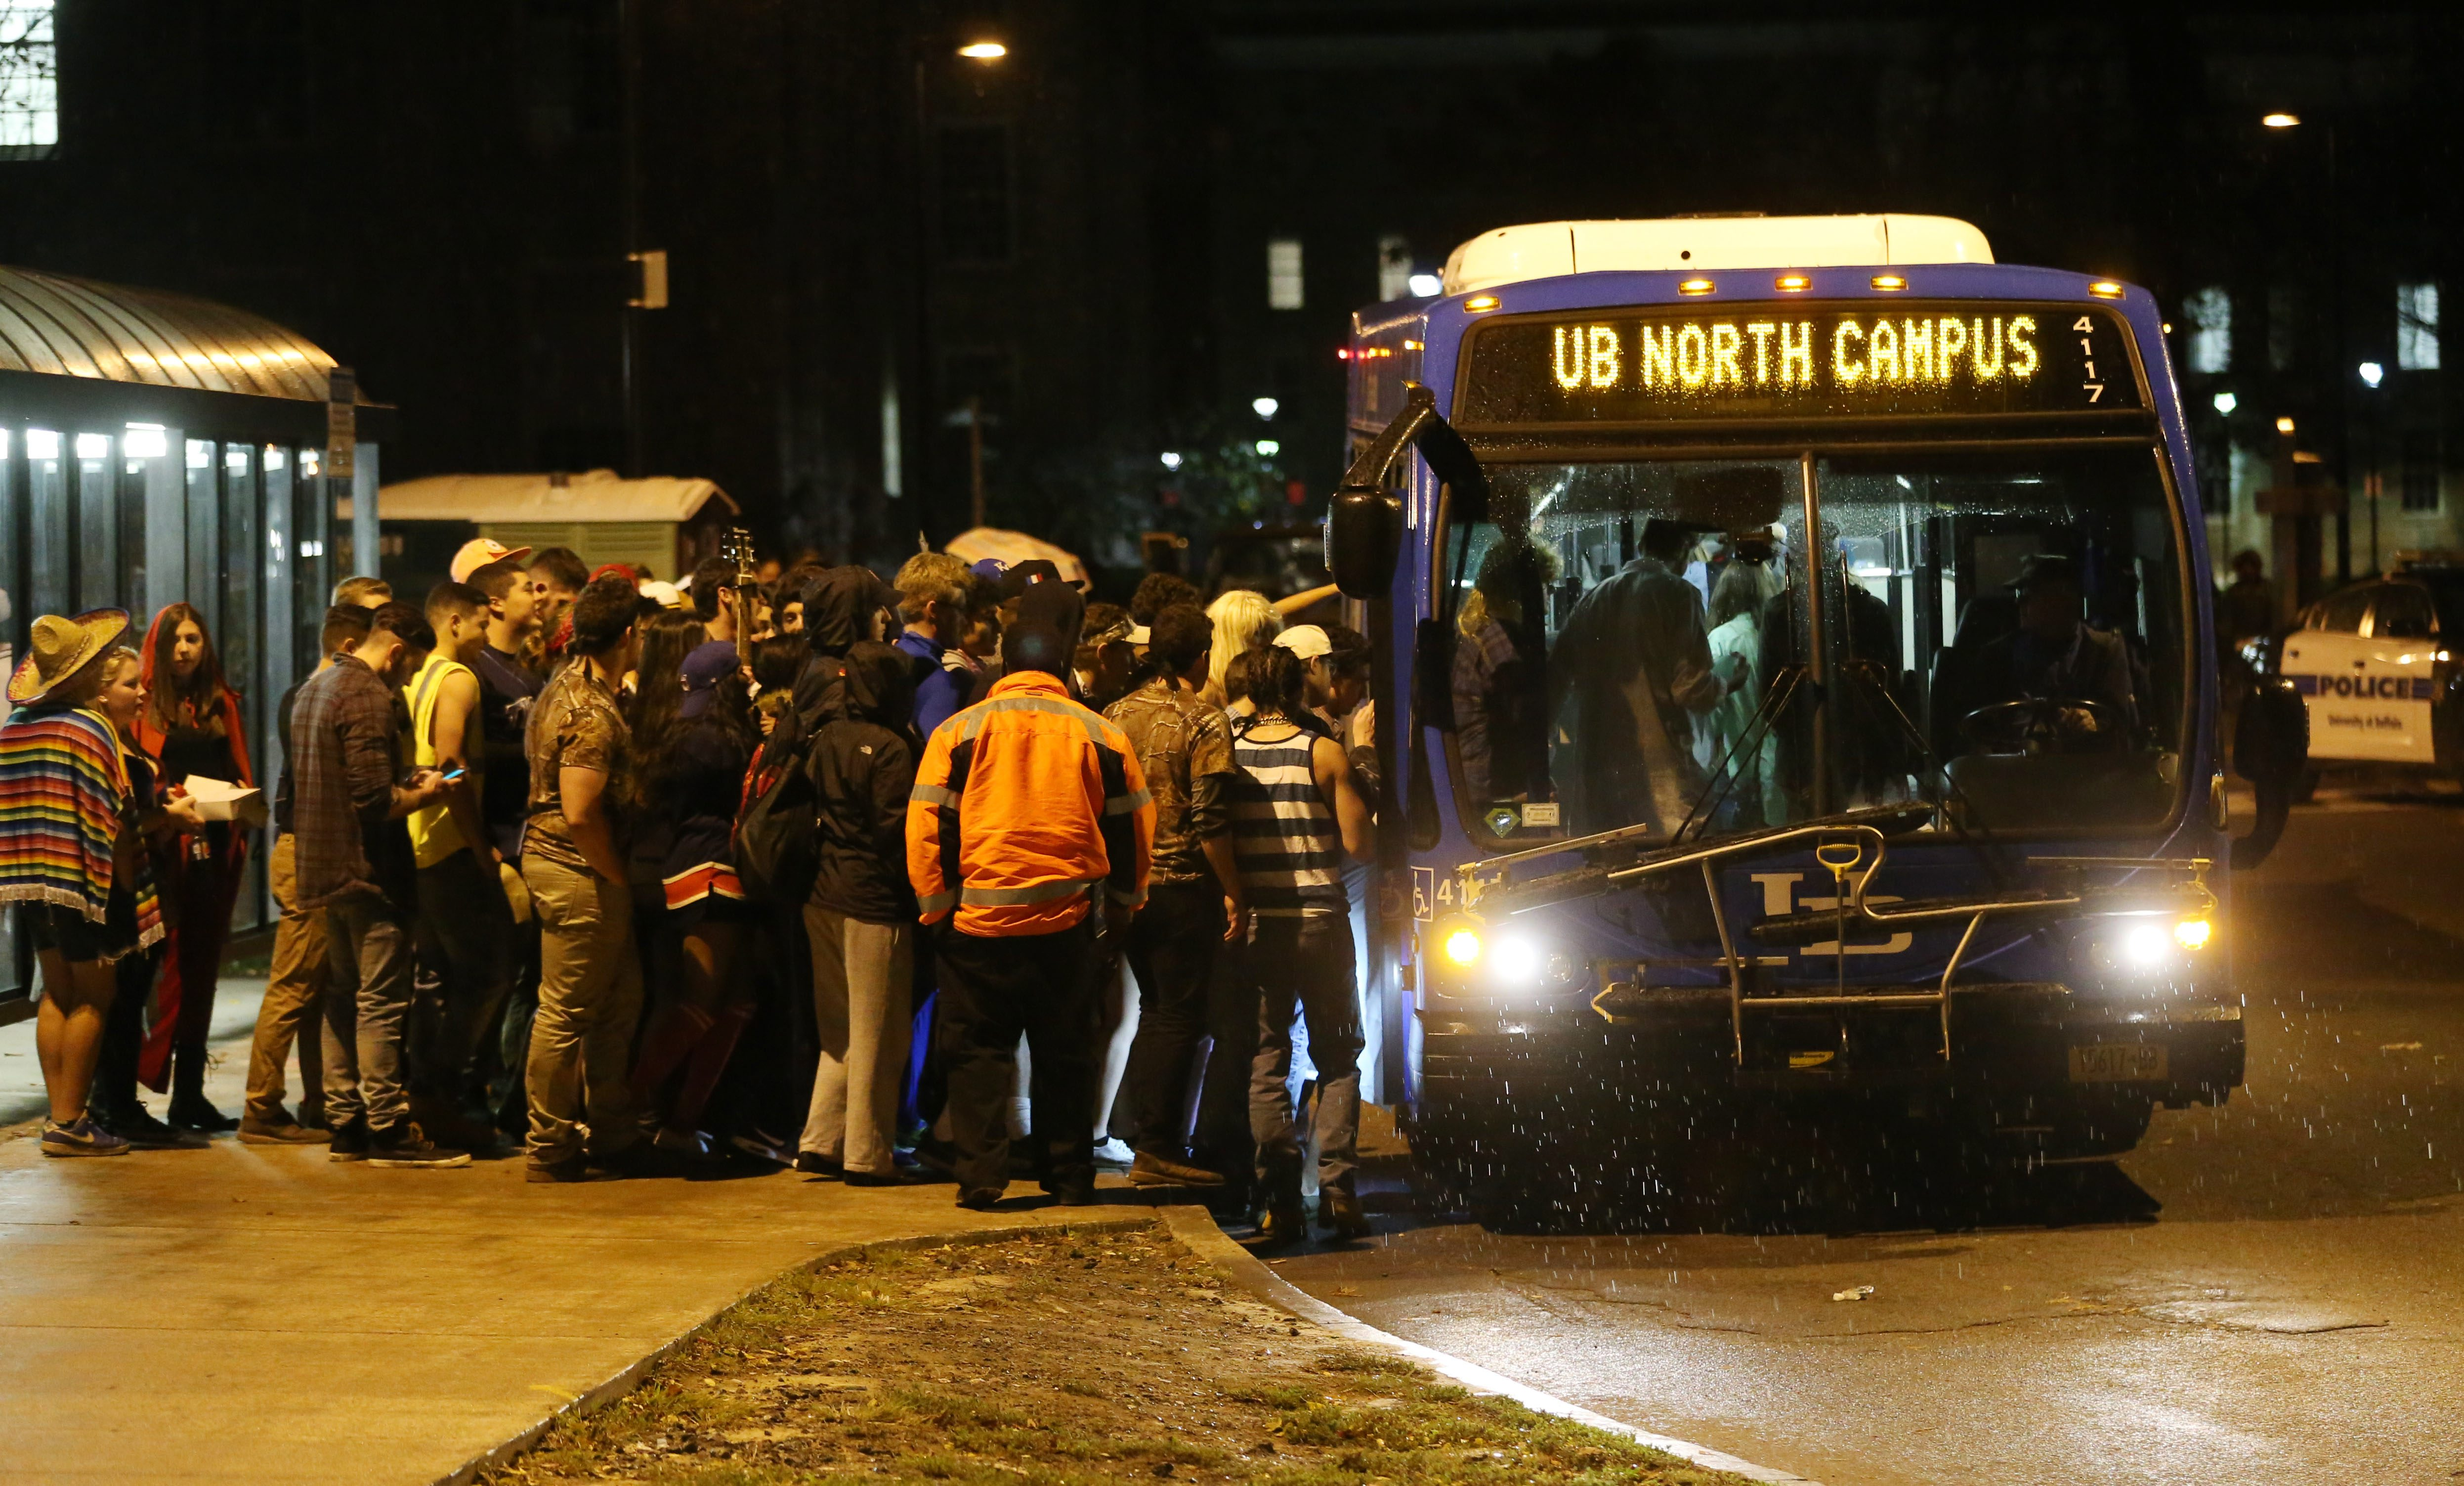 Students pile on the bus at UB South campus to go back to the North Campus at about 1:25 a.m. on Halloween, Sunday, Nov. 1, 2015.   (Sharon Cantillon/Buffalo News)